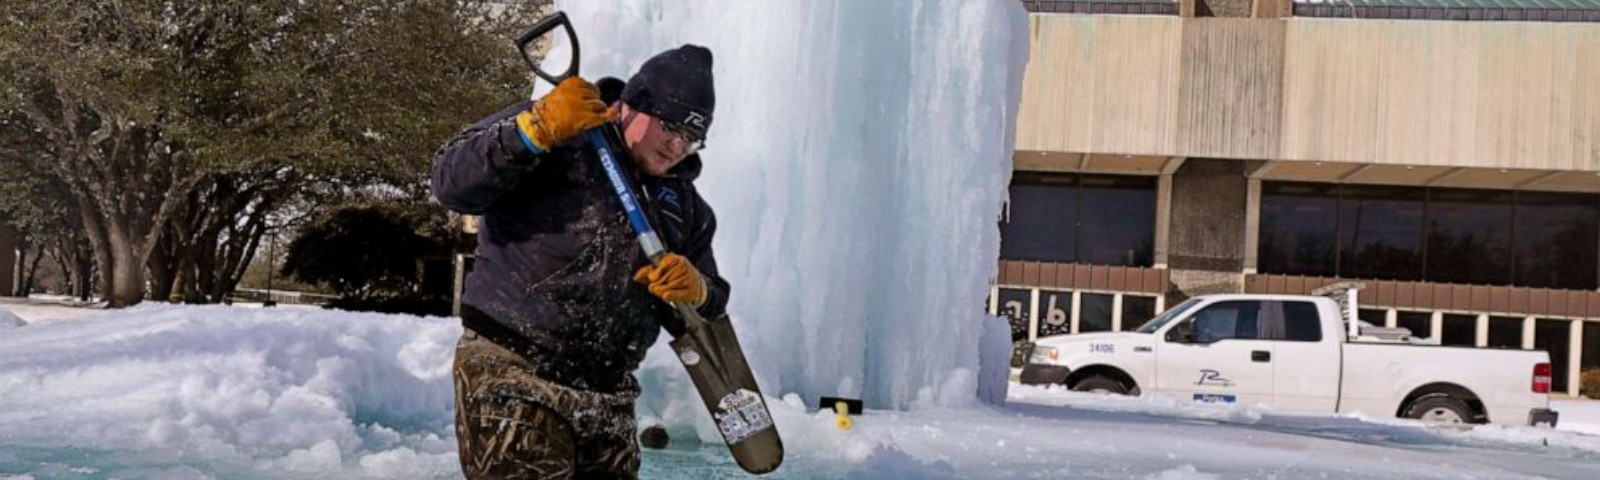 City Worker Breaks up ice in a water fountain inside it.